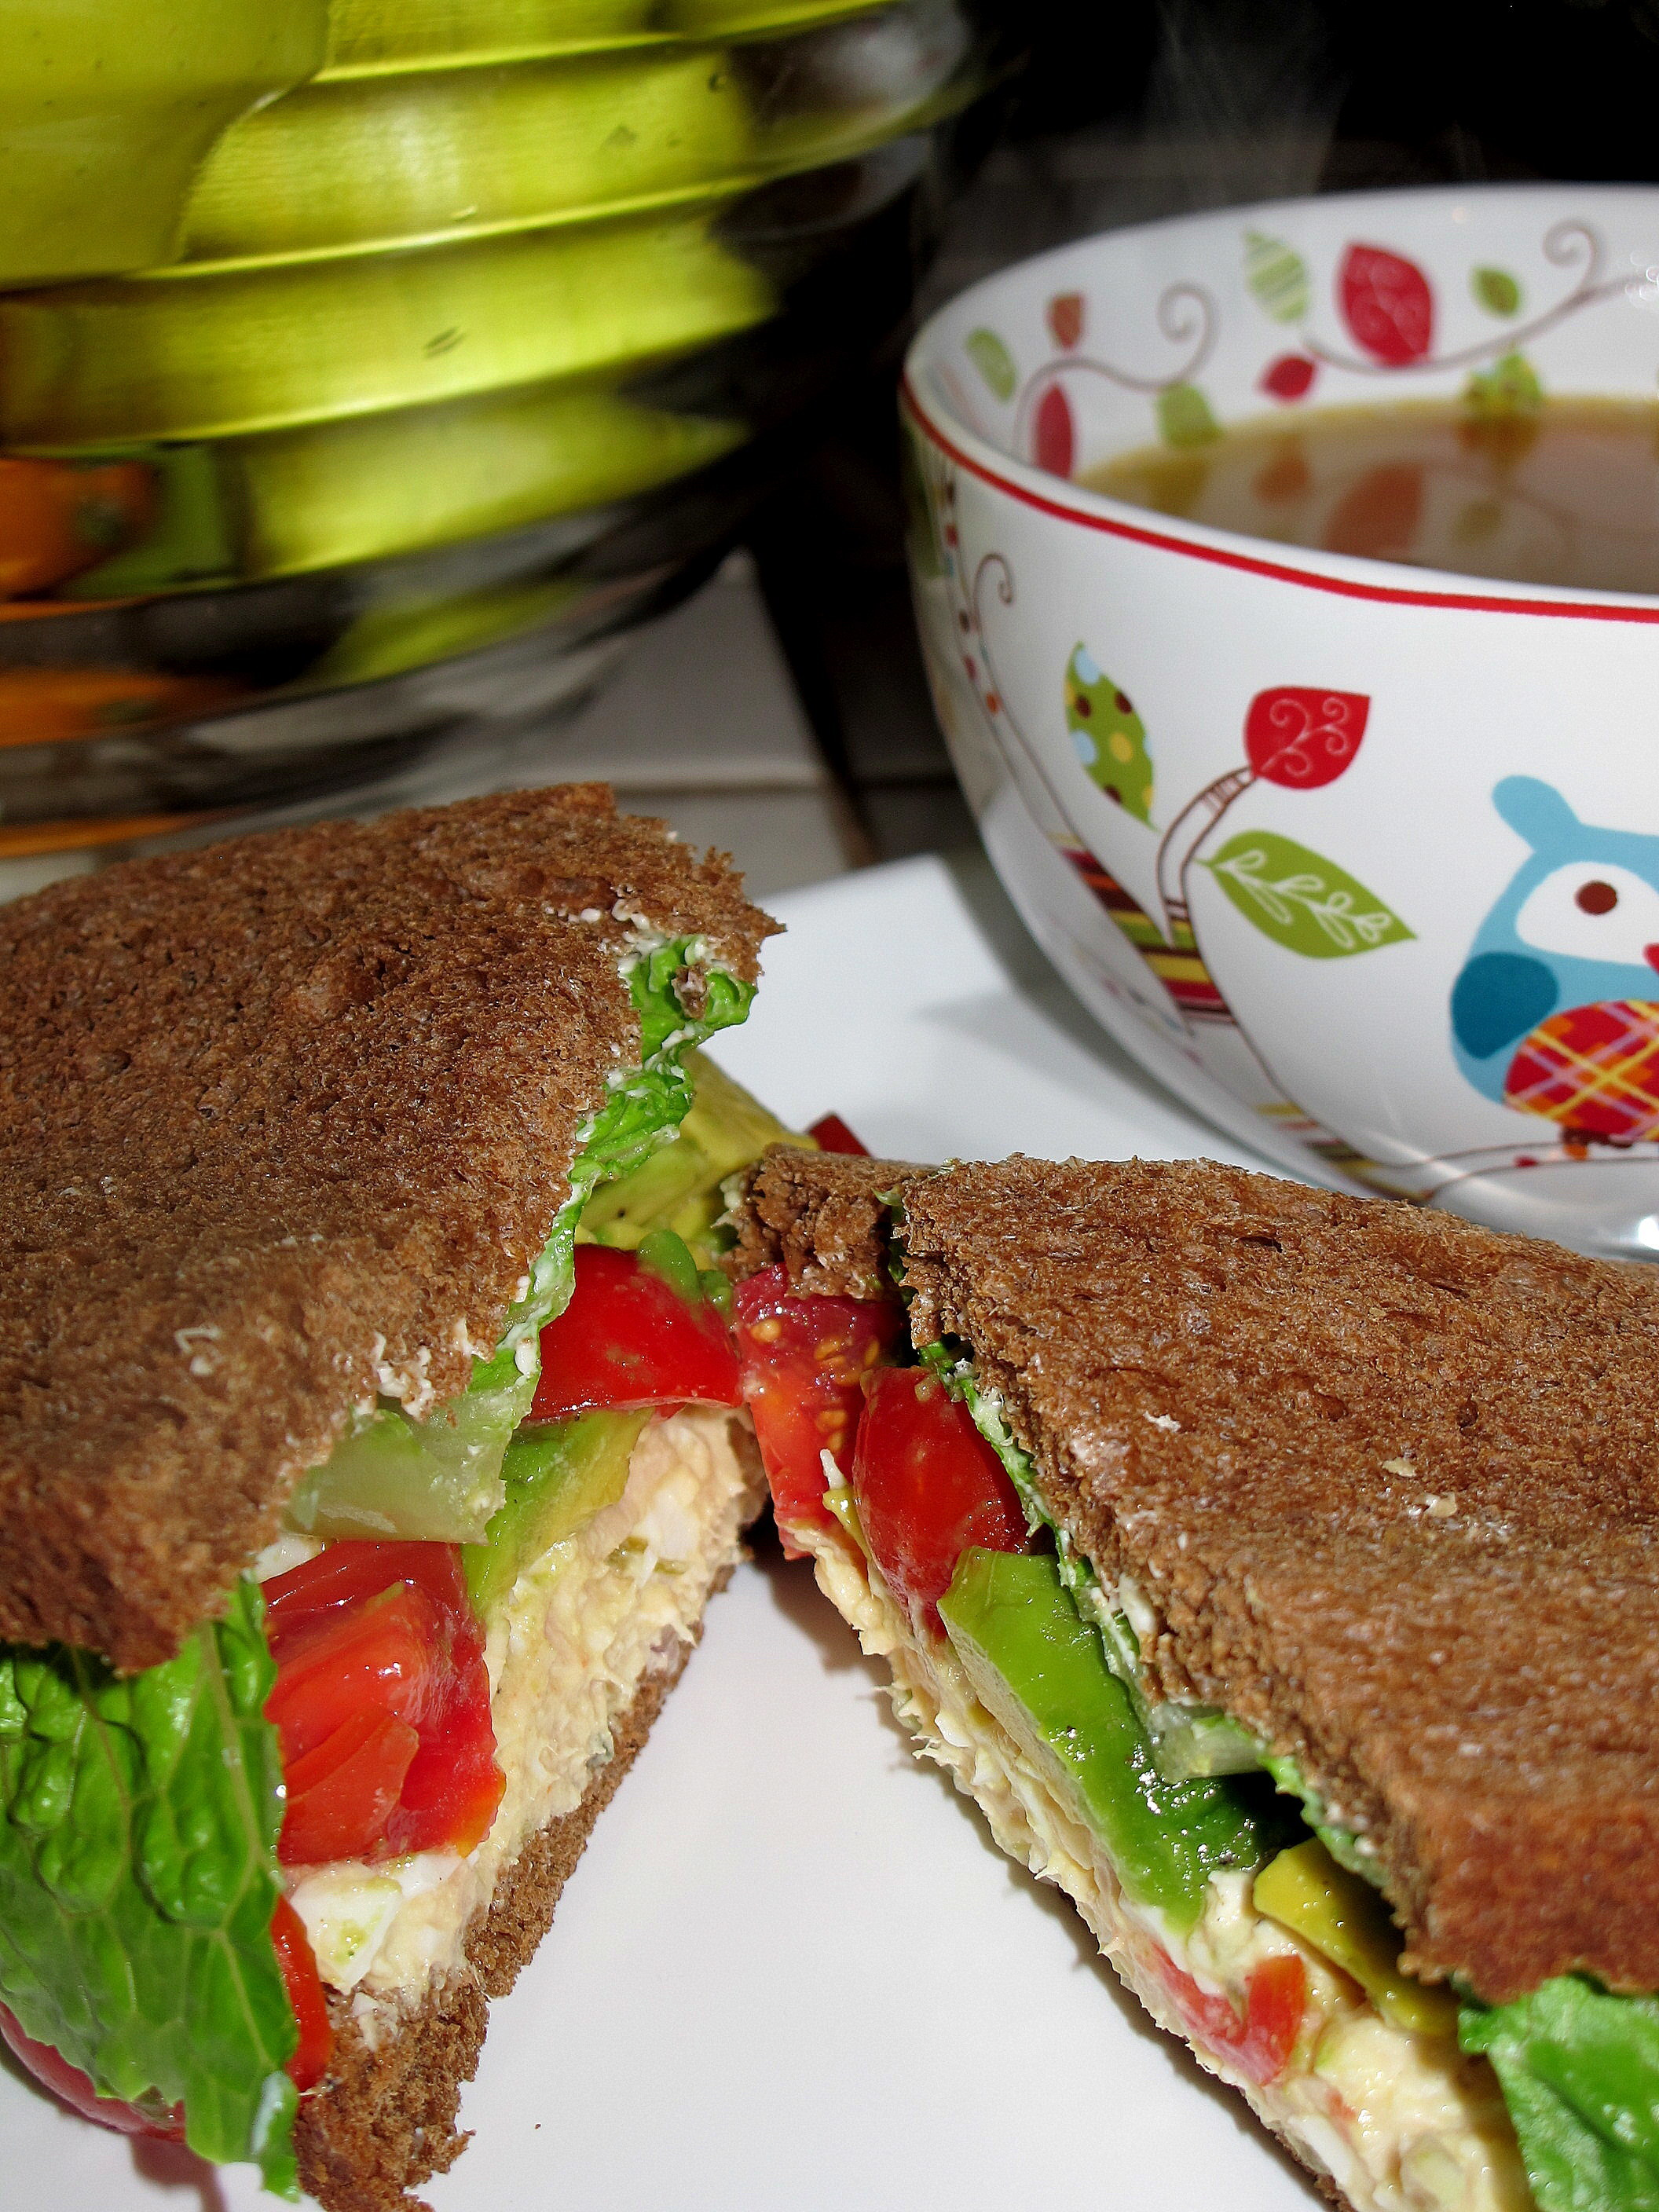 Everyone should smile. Life really isn't that serious. We make it hard. The sun rises. The sun sets. We just tend to complicate the process. – anon and Best Tuna and Egg Sandwich with Tomato and Avocado Relish